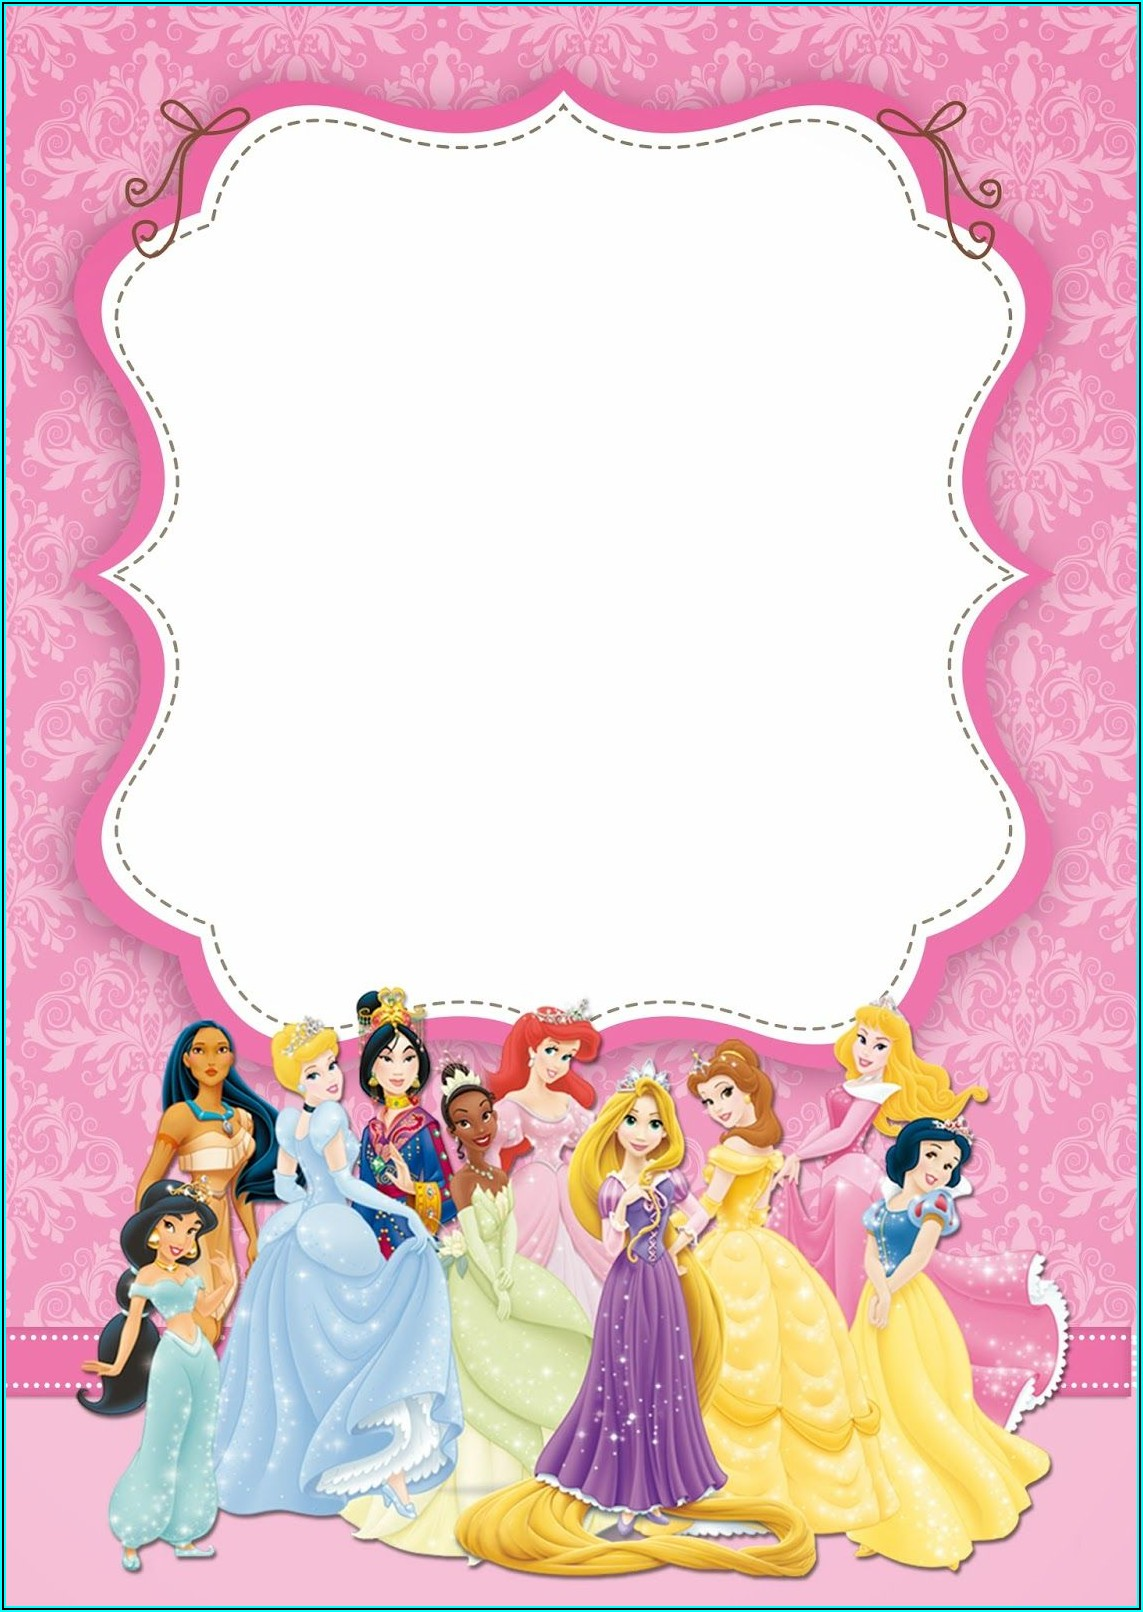 Disney Princess Birthday Invitation Template Free Download